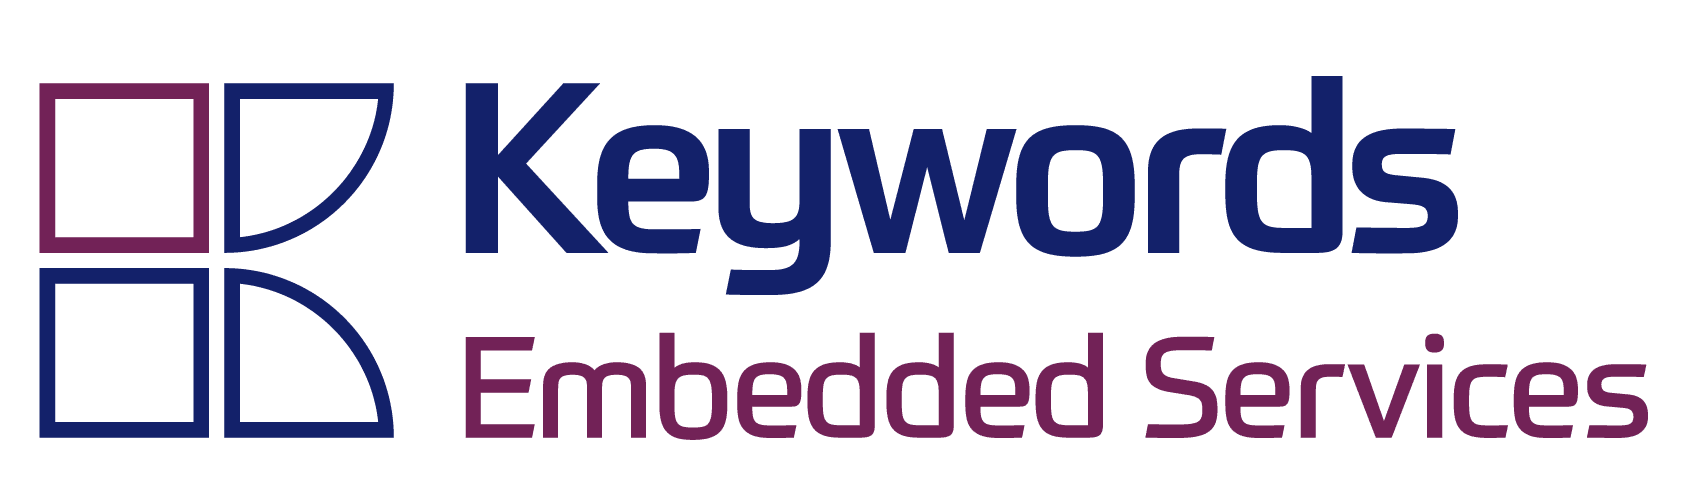 KW_Embedded_Services_logo